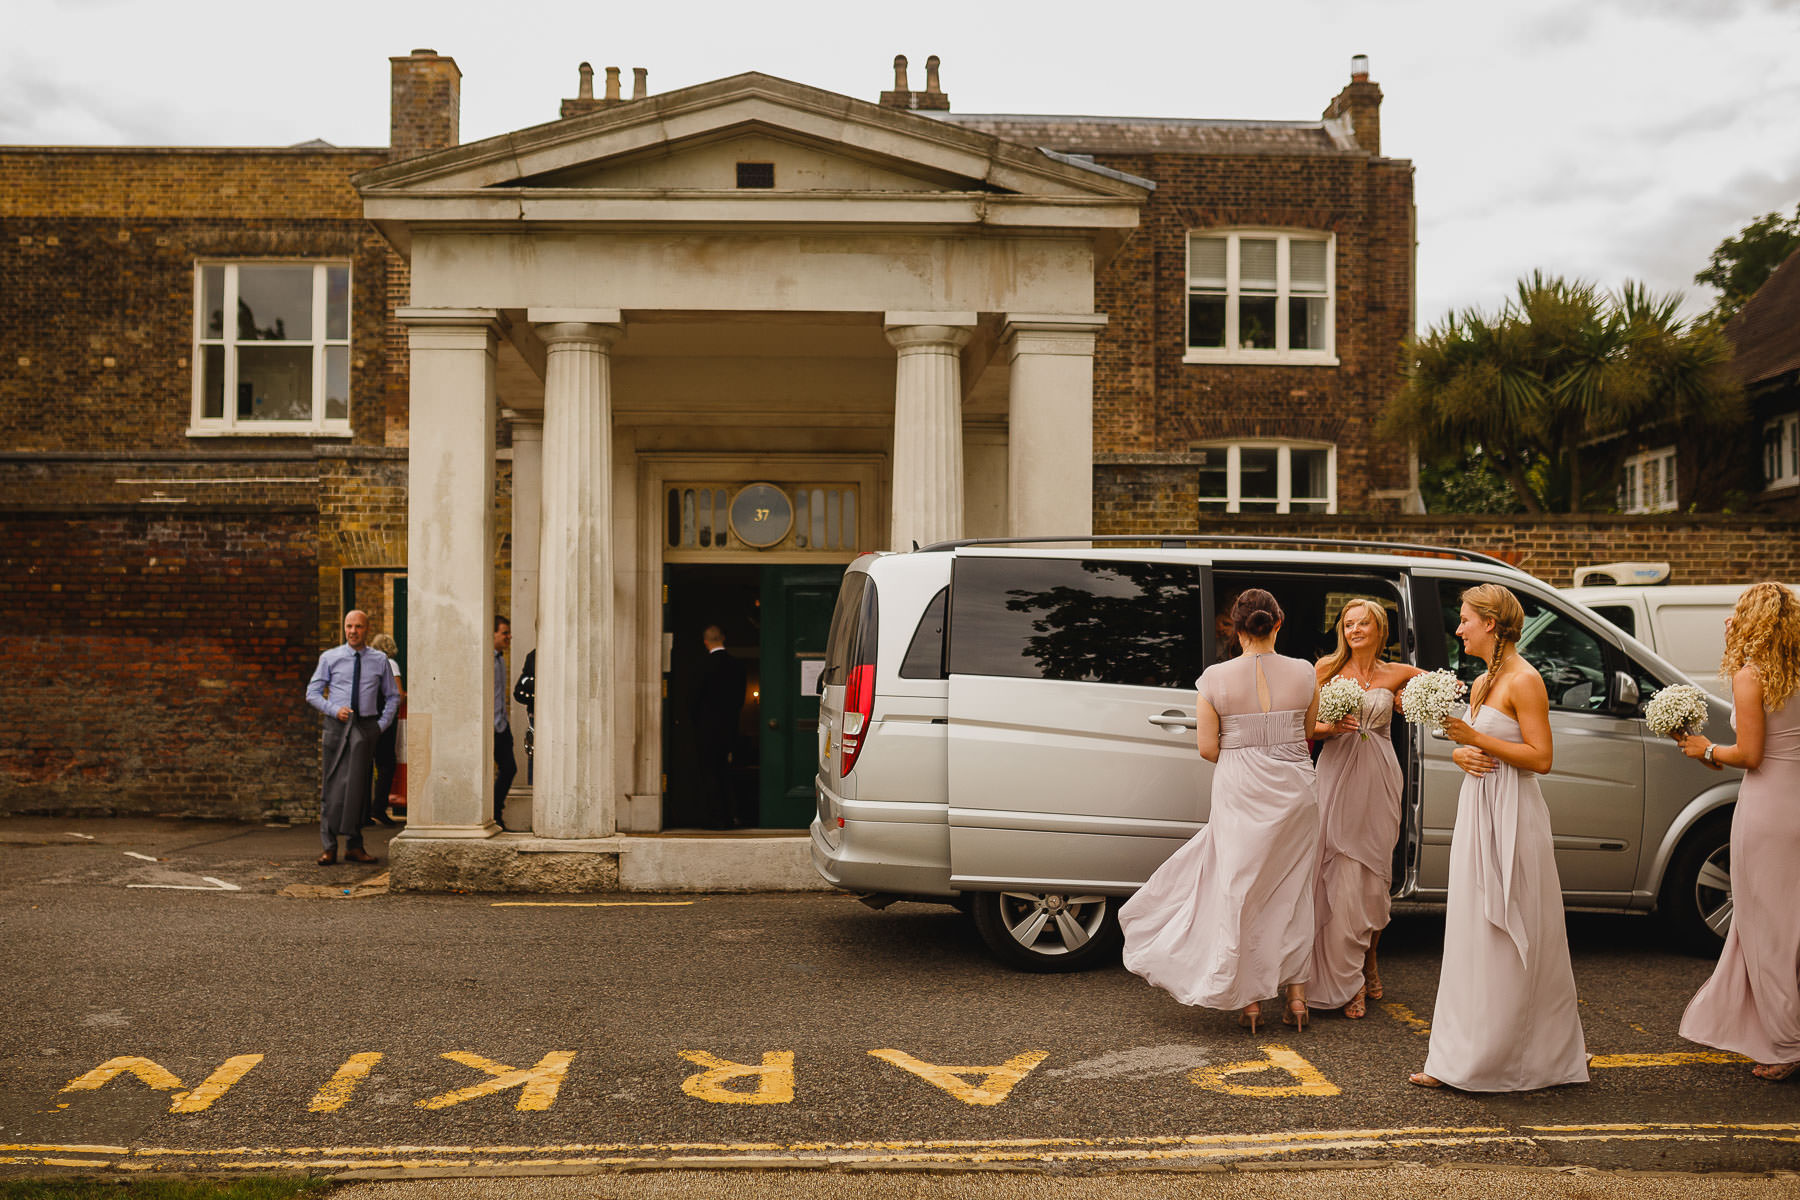 kew gardens wedding photography astra duncan6